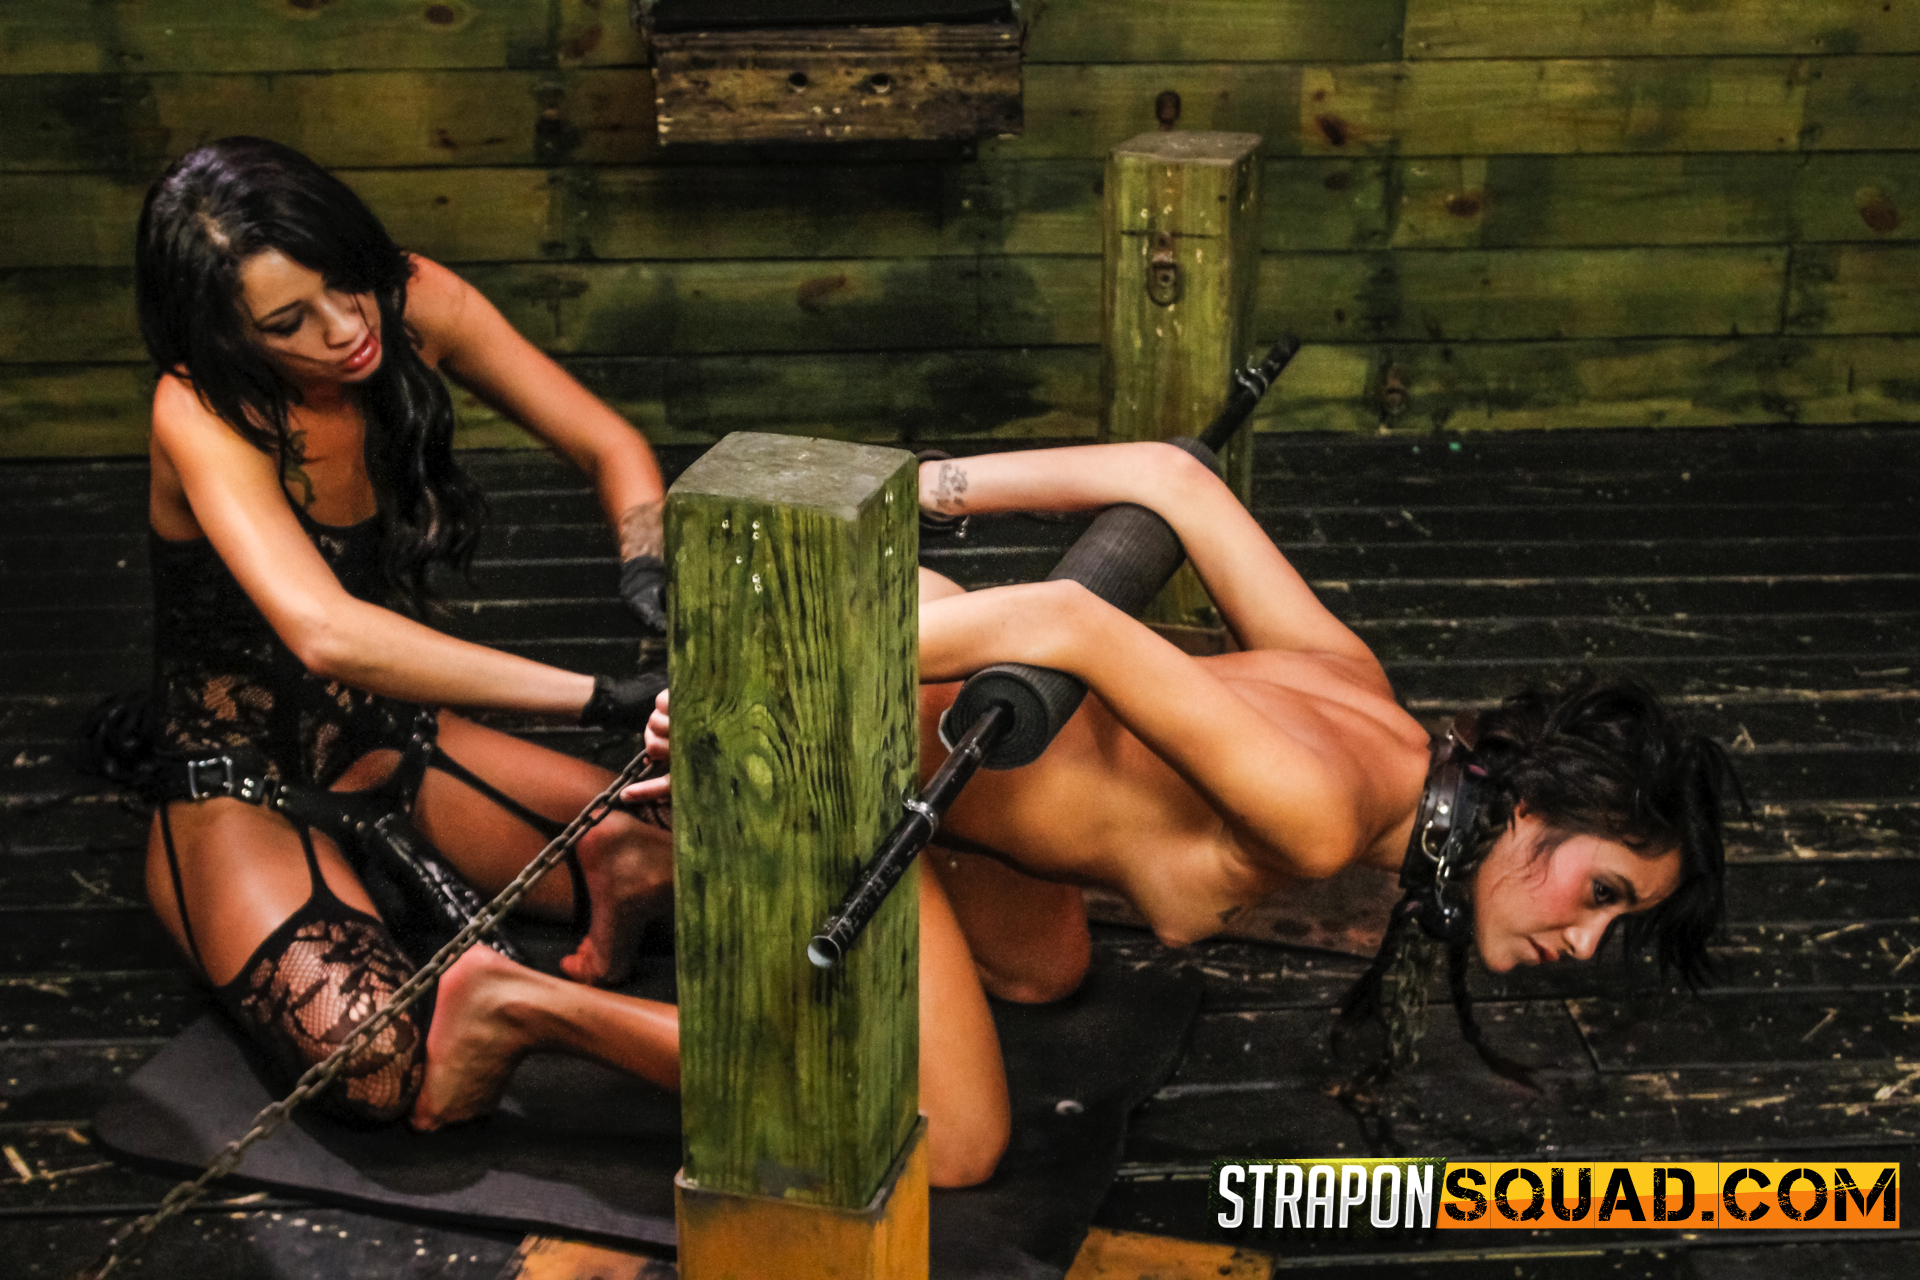 Sapphic domination and squirting with marina angel and esmi lee. Dominatrix Esmi Lee is quite cute at having hardcore BDSM fun with bondage, sybian fuck machine, rough sex, spanking, slapping tits, biting nipples, smacking, whipping, deep penetration, constant orgasms and more sex toys. The ending to this particular video will make you dick explode. Esmi squirts all over her obedient slut's face, making Marina drink every last drop.